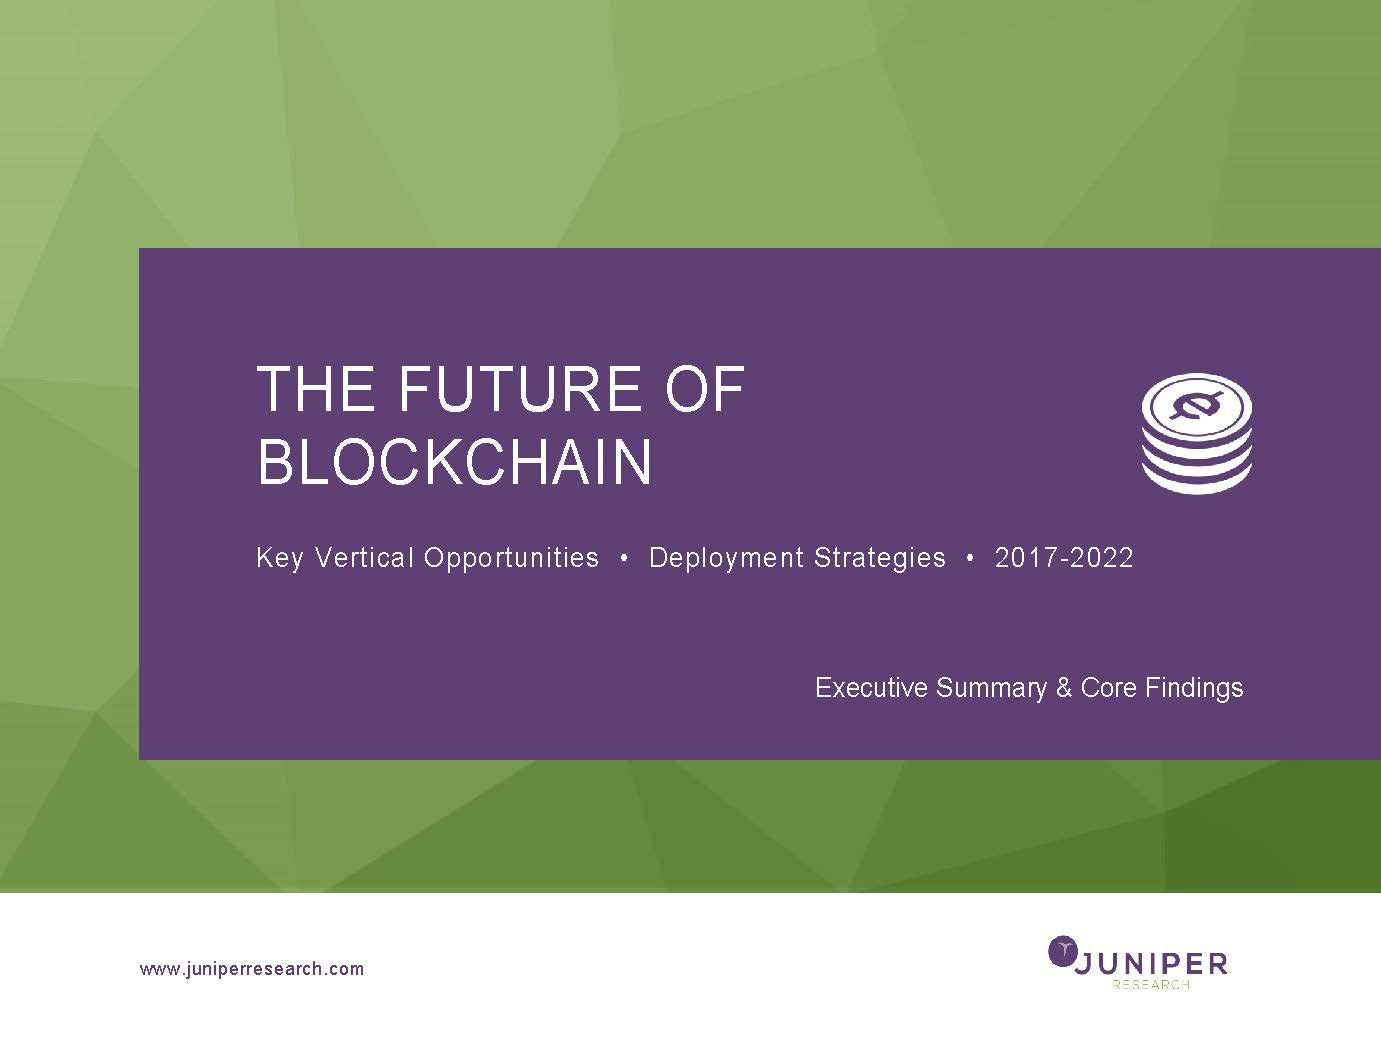 The Future of Blockchain: Executive Summary & Core Findings 2017-2022